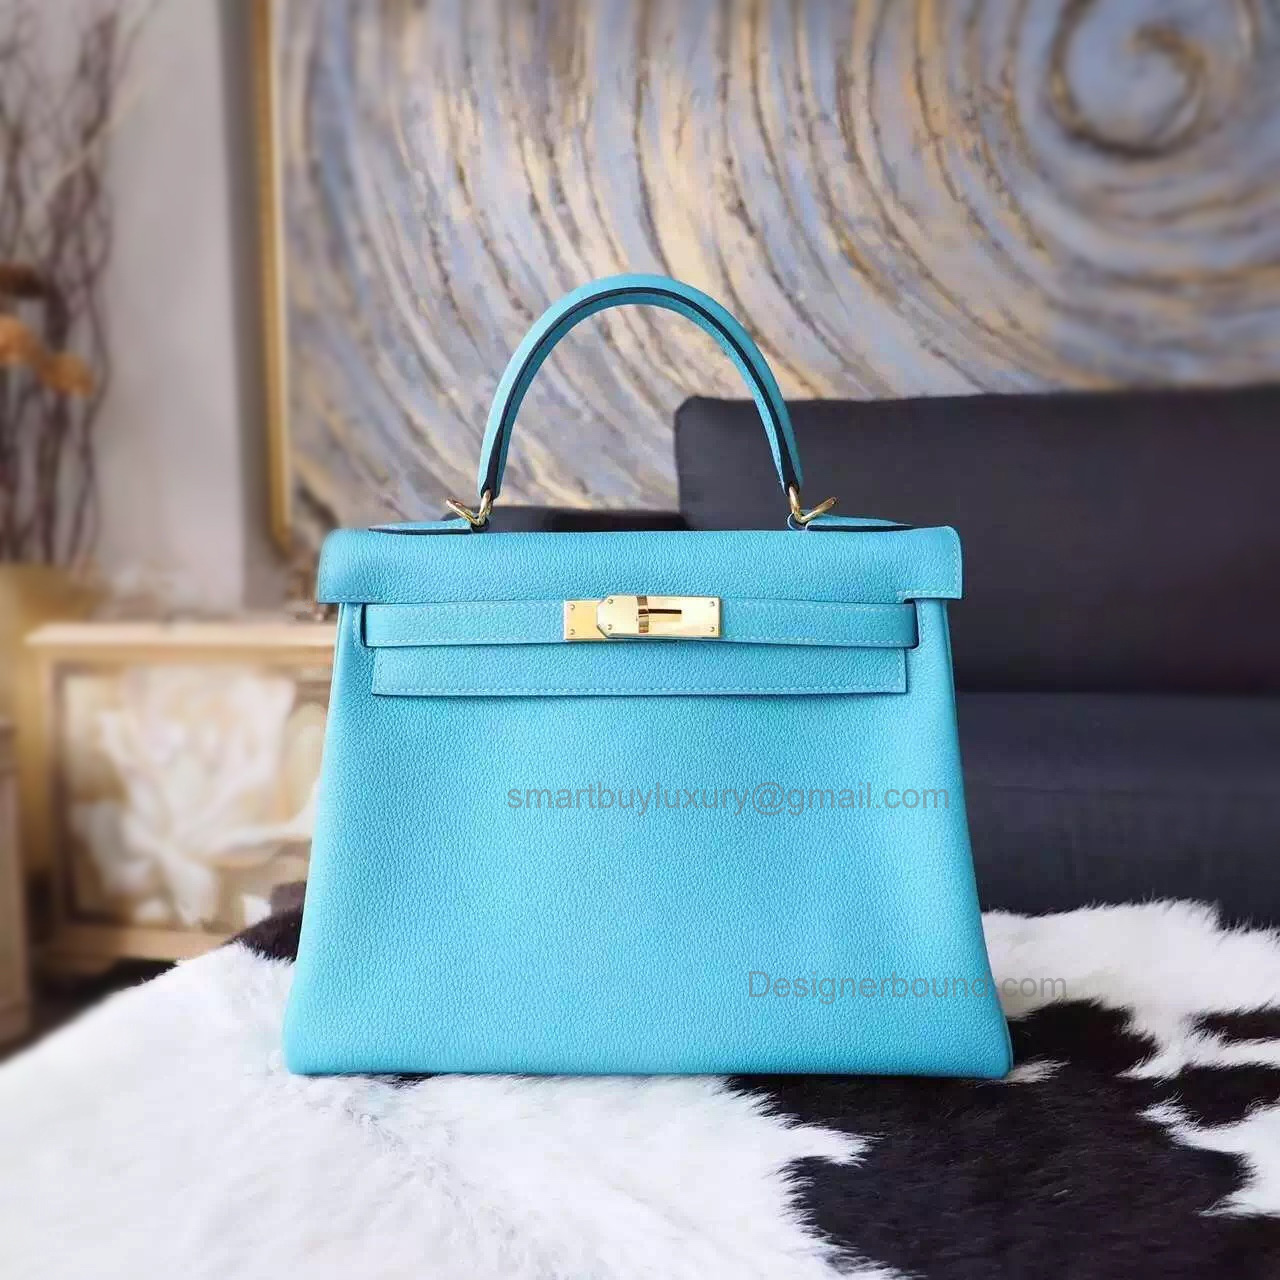 Copy Hermes Kelly 25 Handmade Bag in 3z Blue Saint Cyr Togo Calfskin GHW